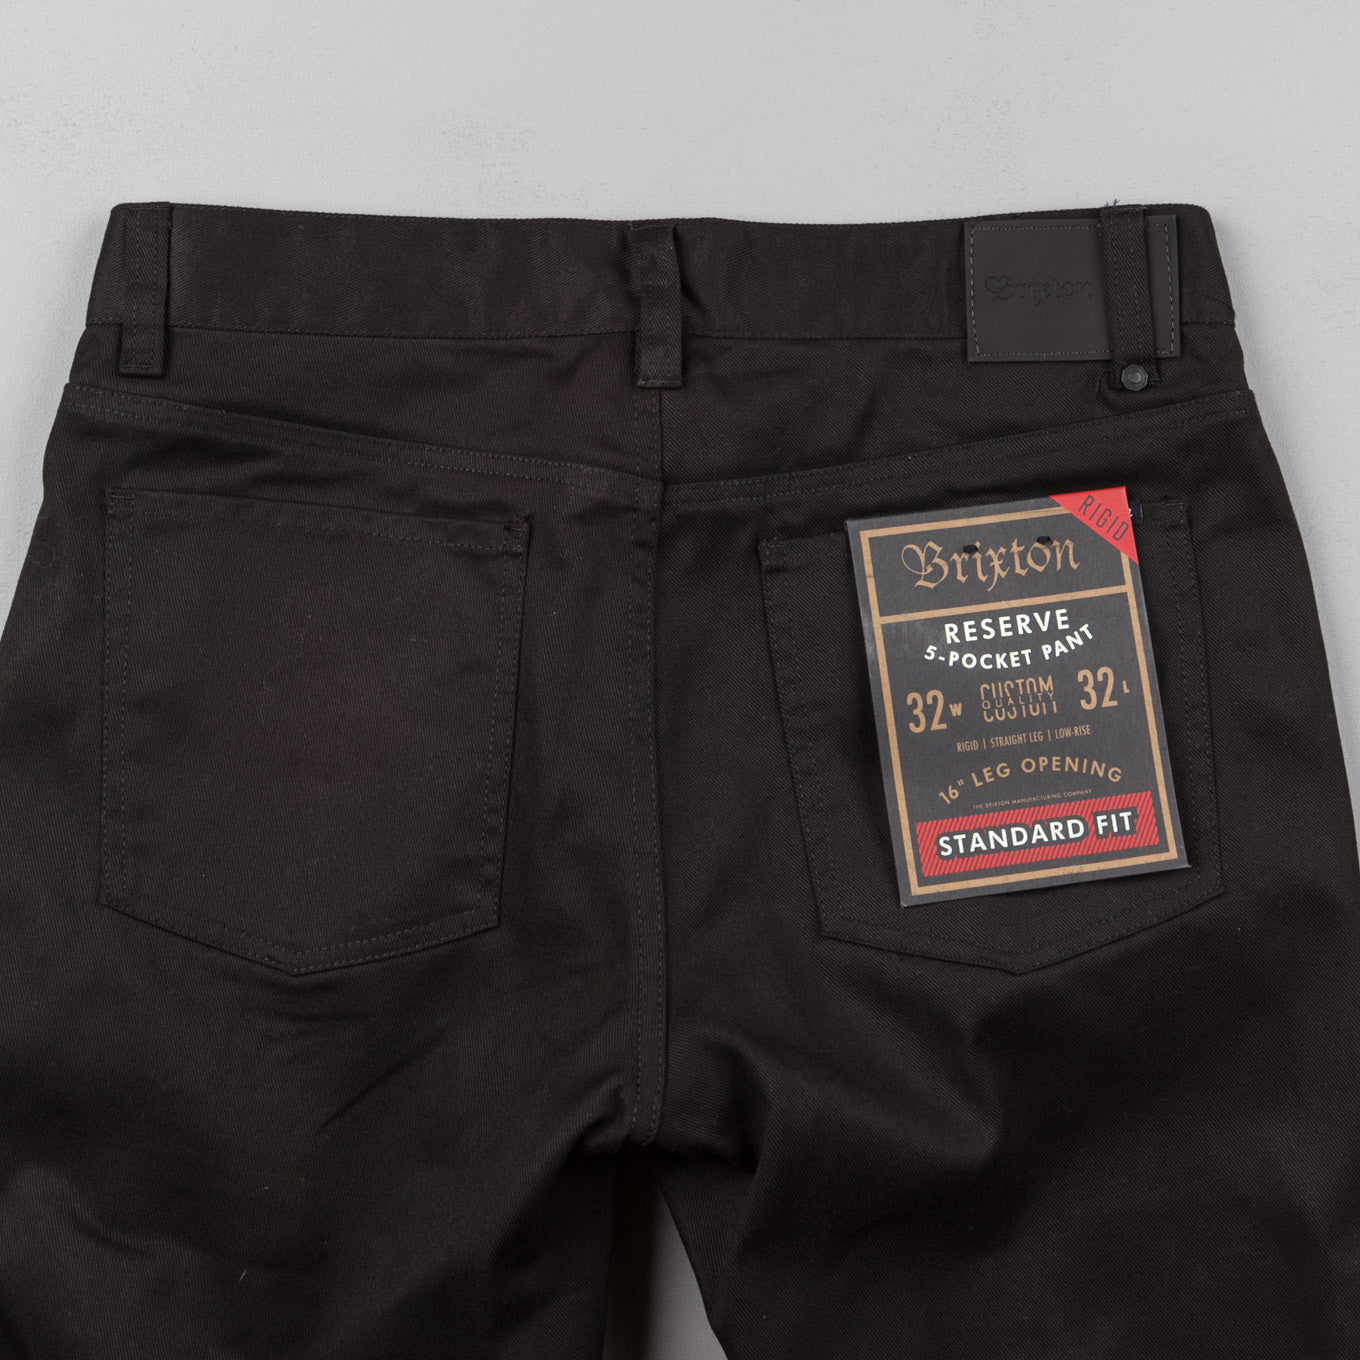 Brixton Reserve Rigid 5 Pocket Trousers - Black